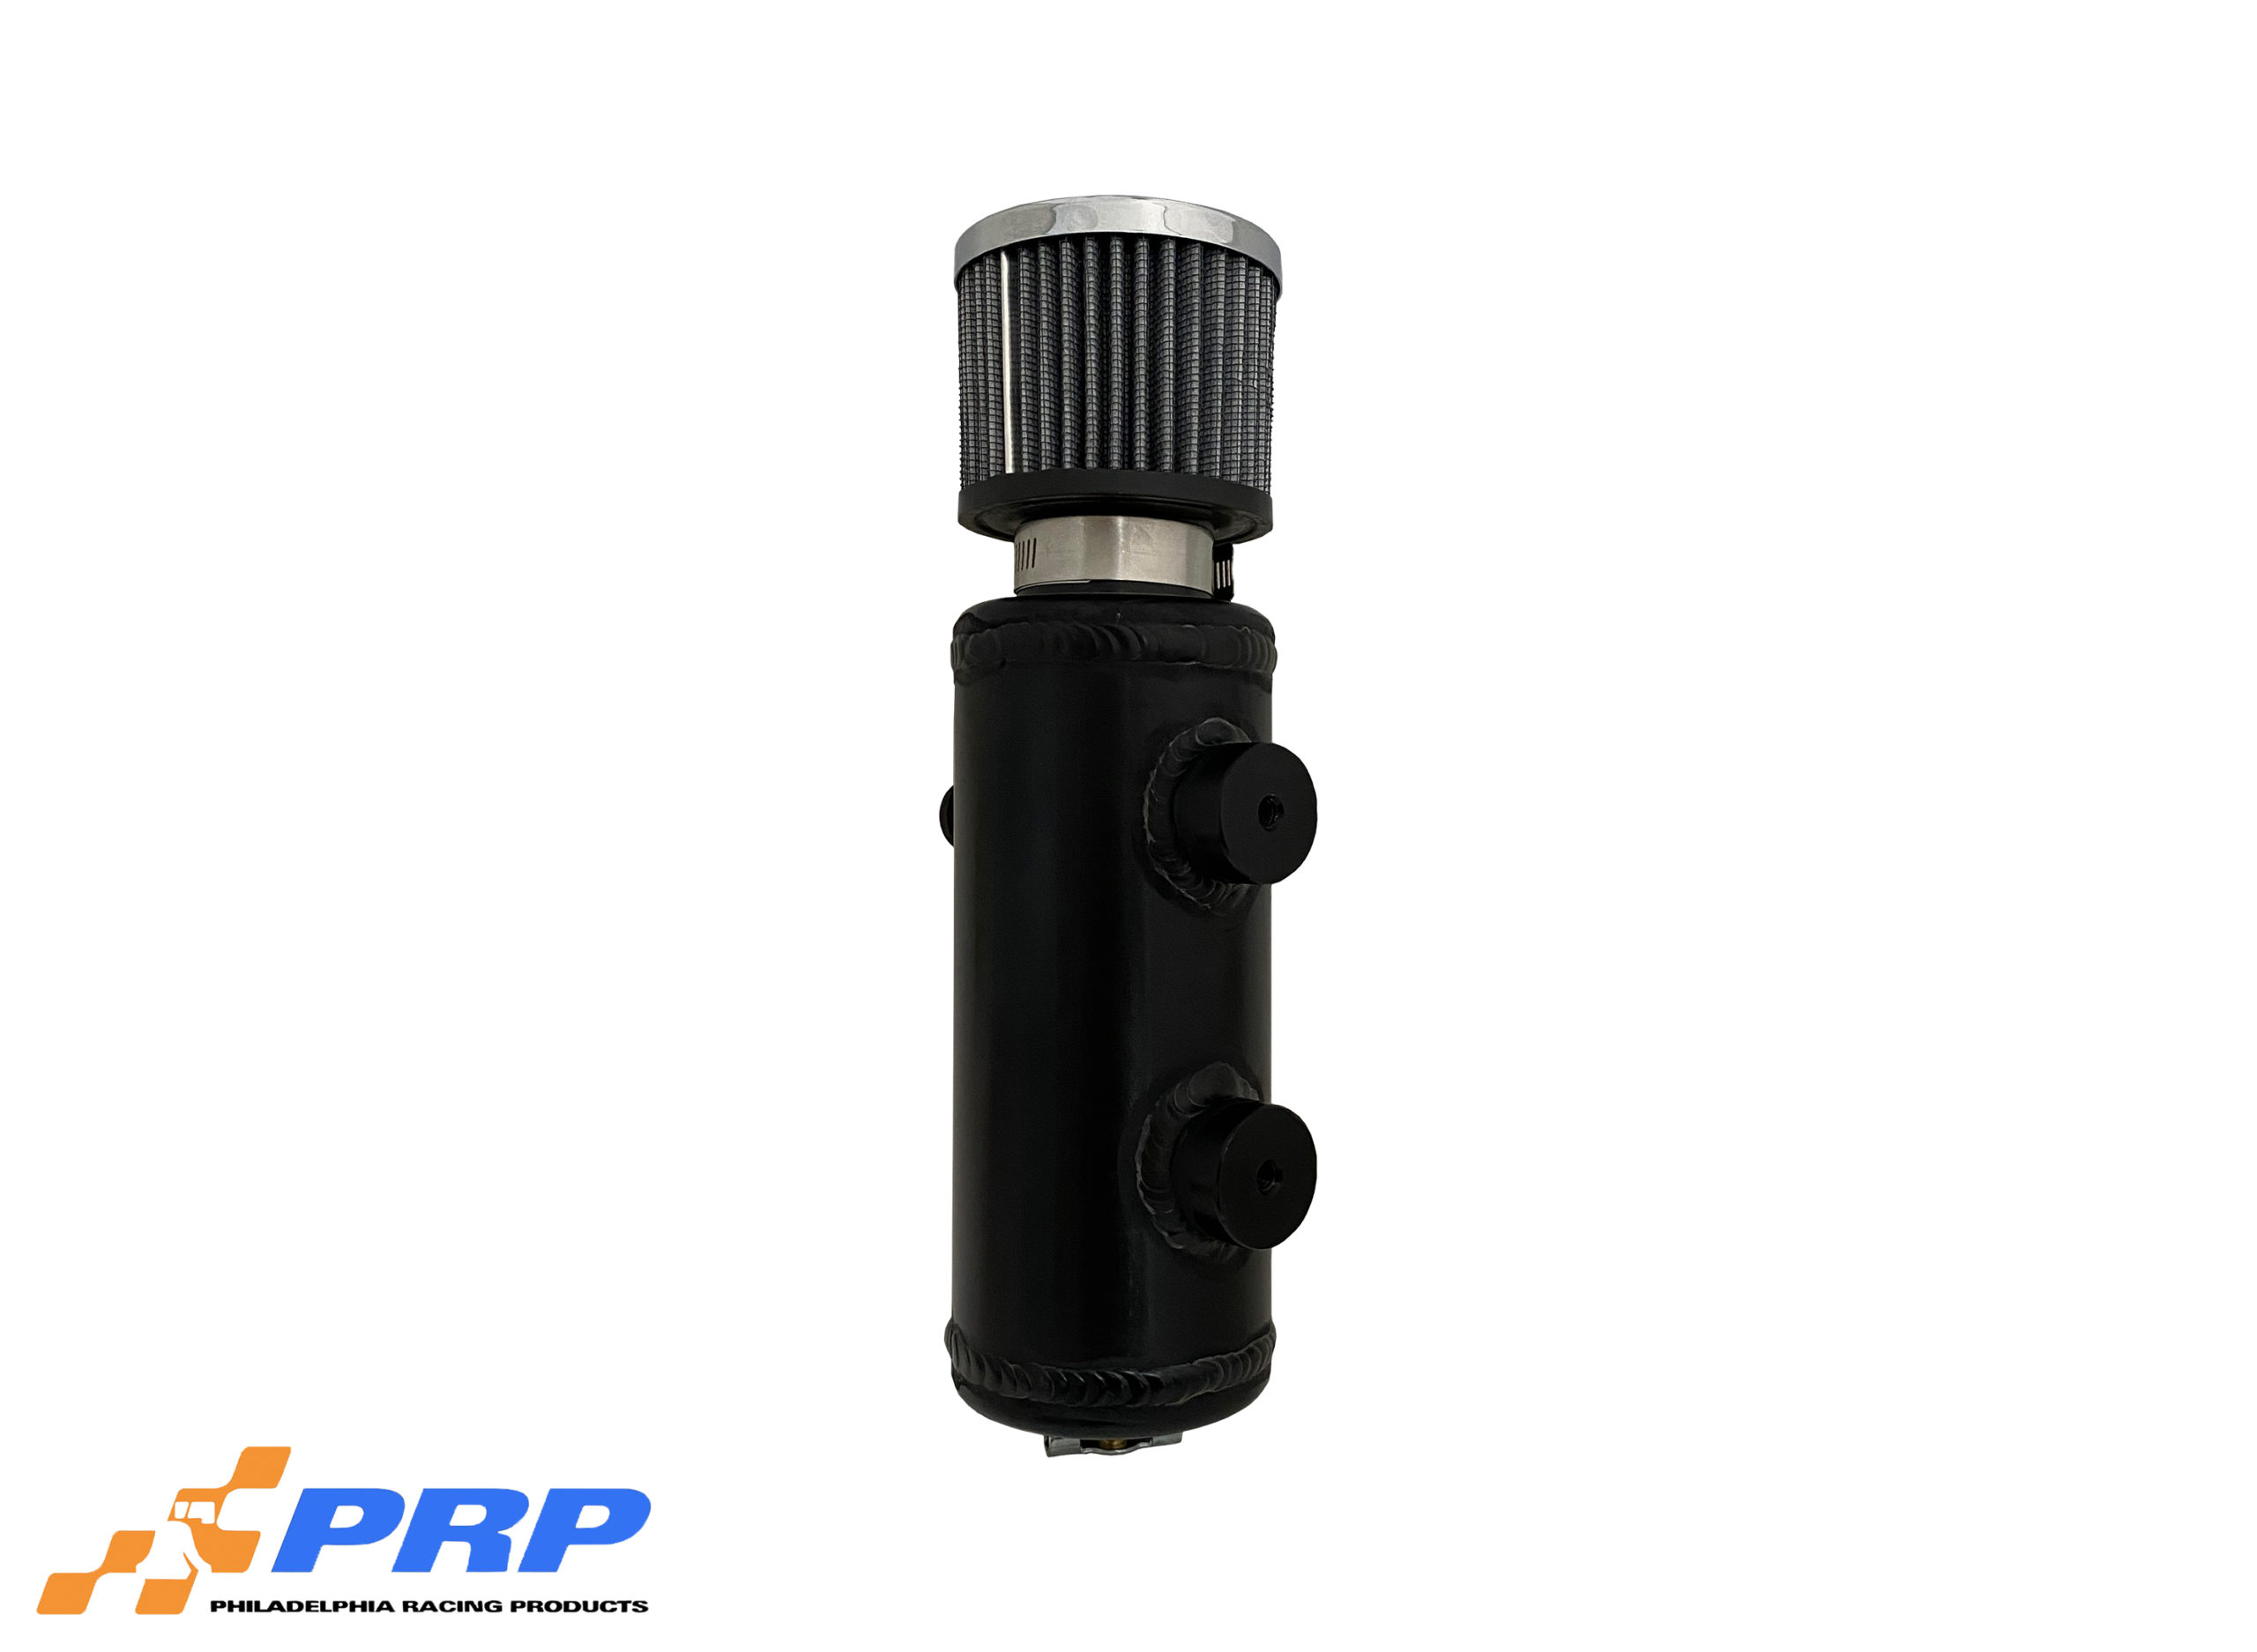 Black anodized Aluminum Breather Tank made by PRP Racing Products